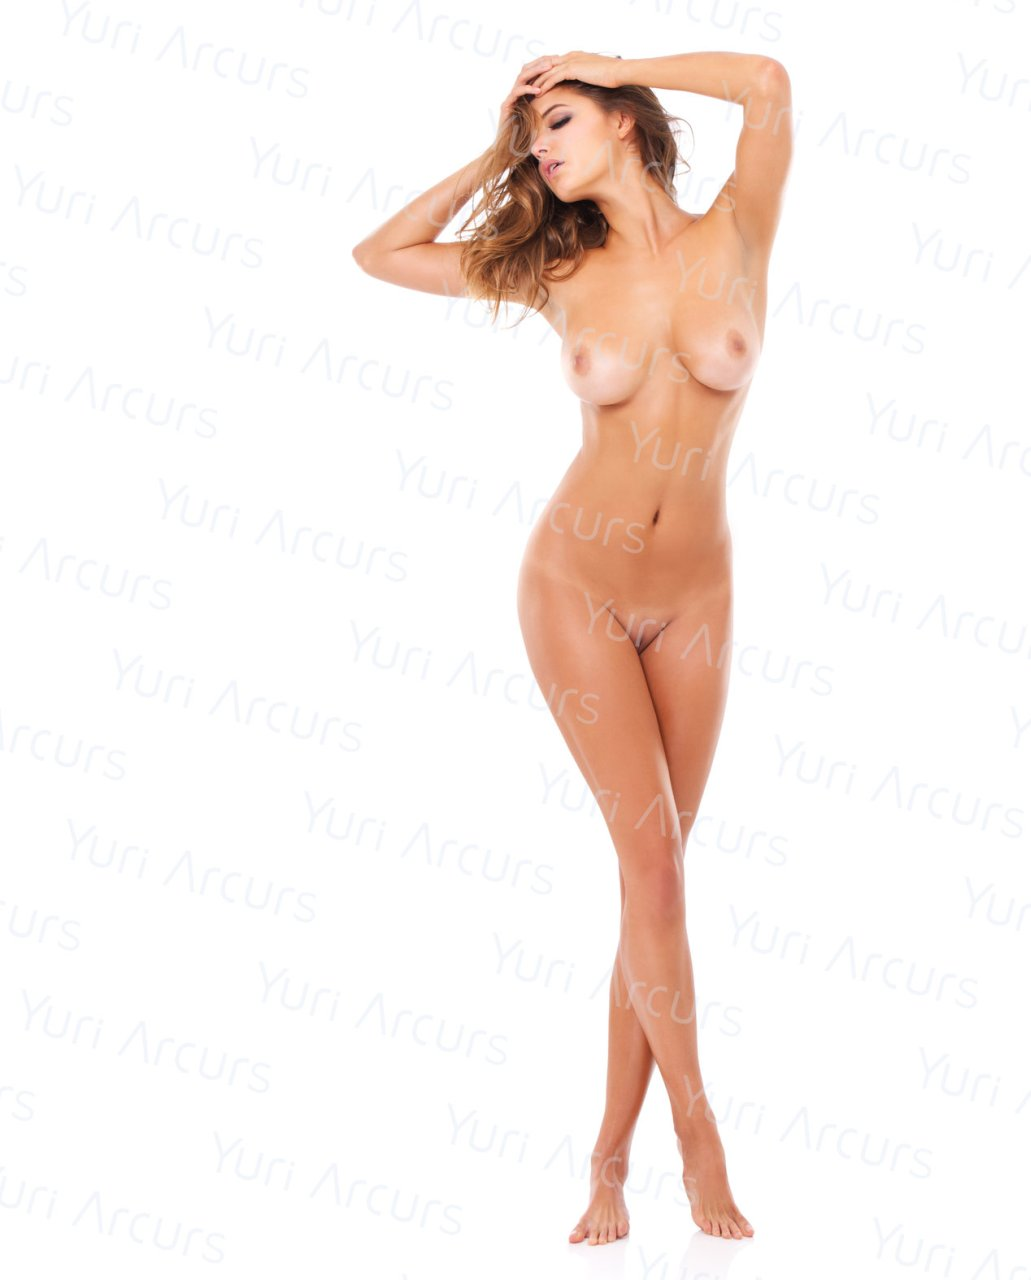 alyssa arce naked (26 photos) | #thefappening